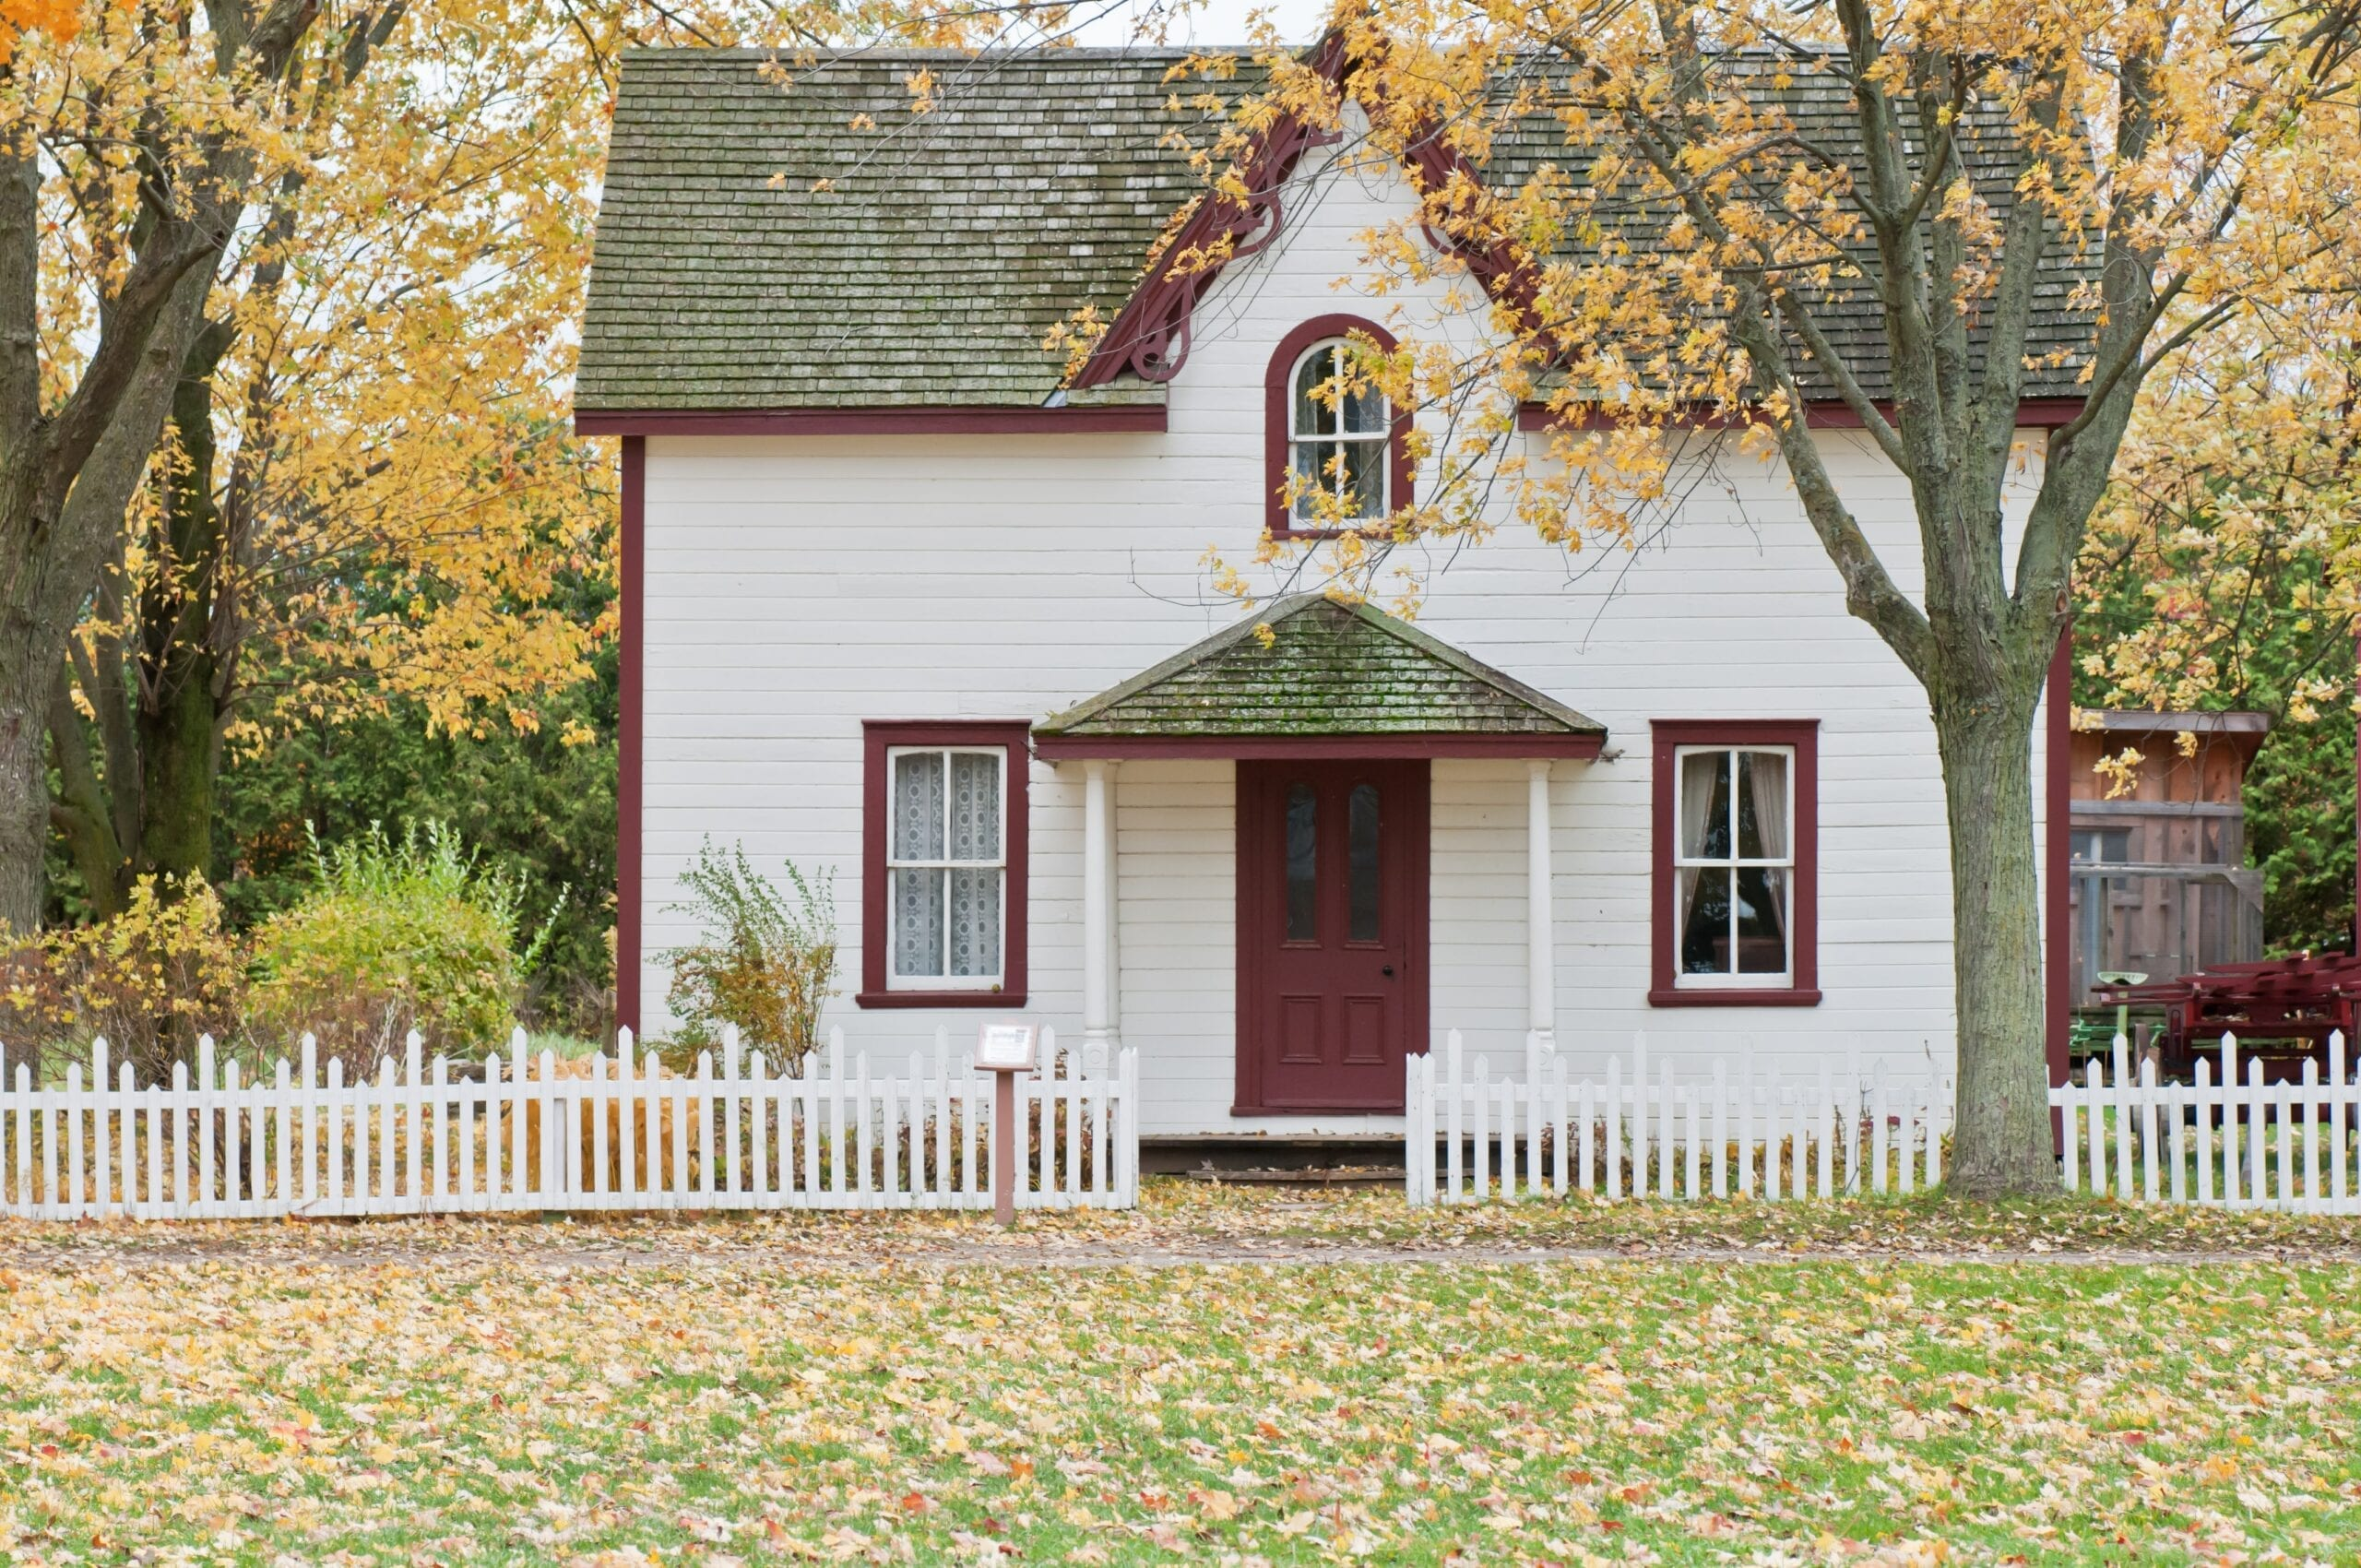 Home in Fall to Go Green